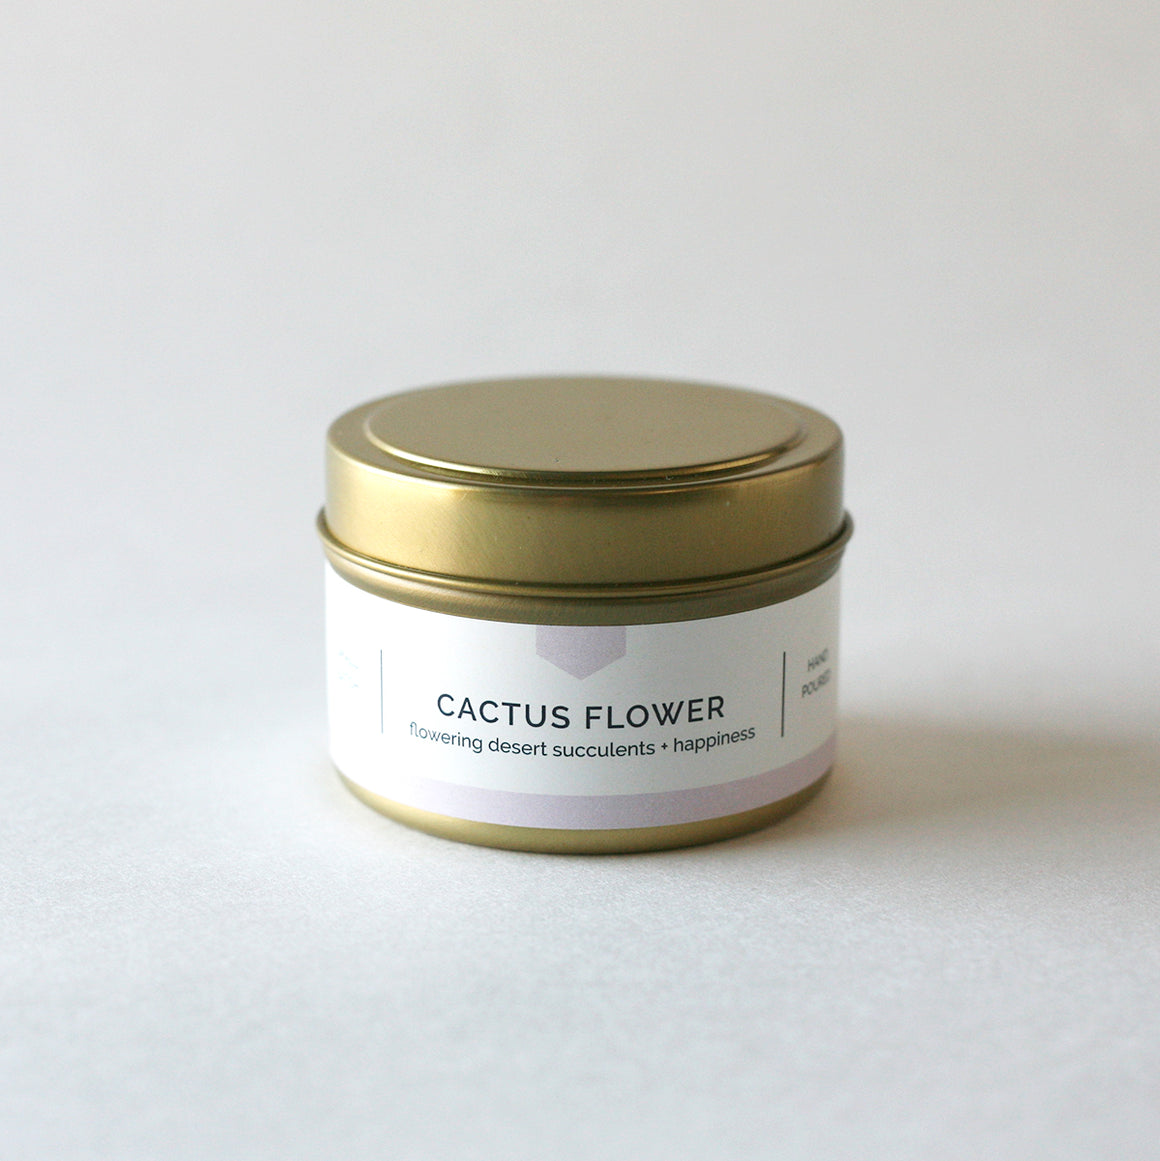 CACTUS FLOWER 4 oz Travel Tin Soy Candle